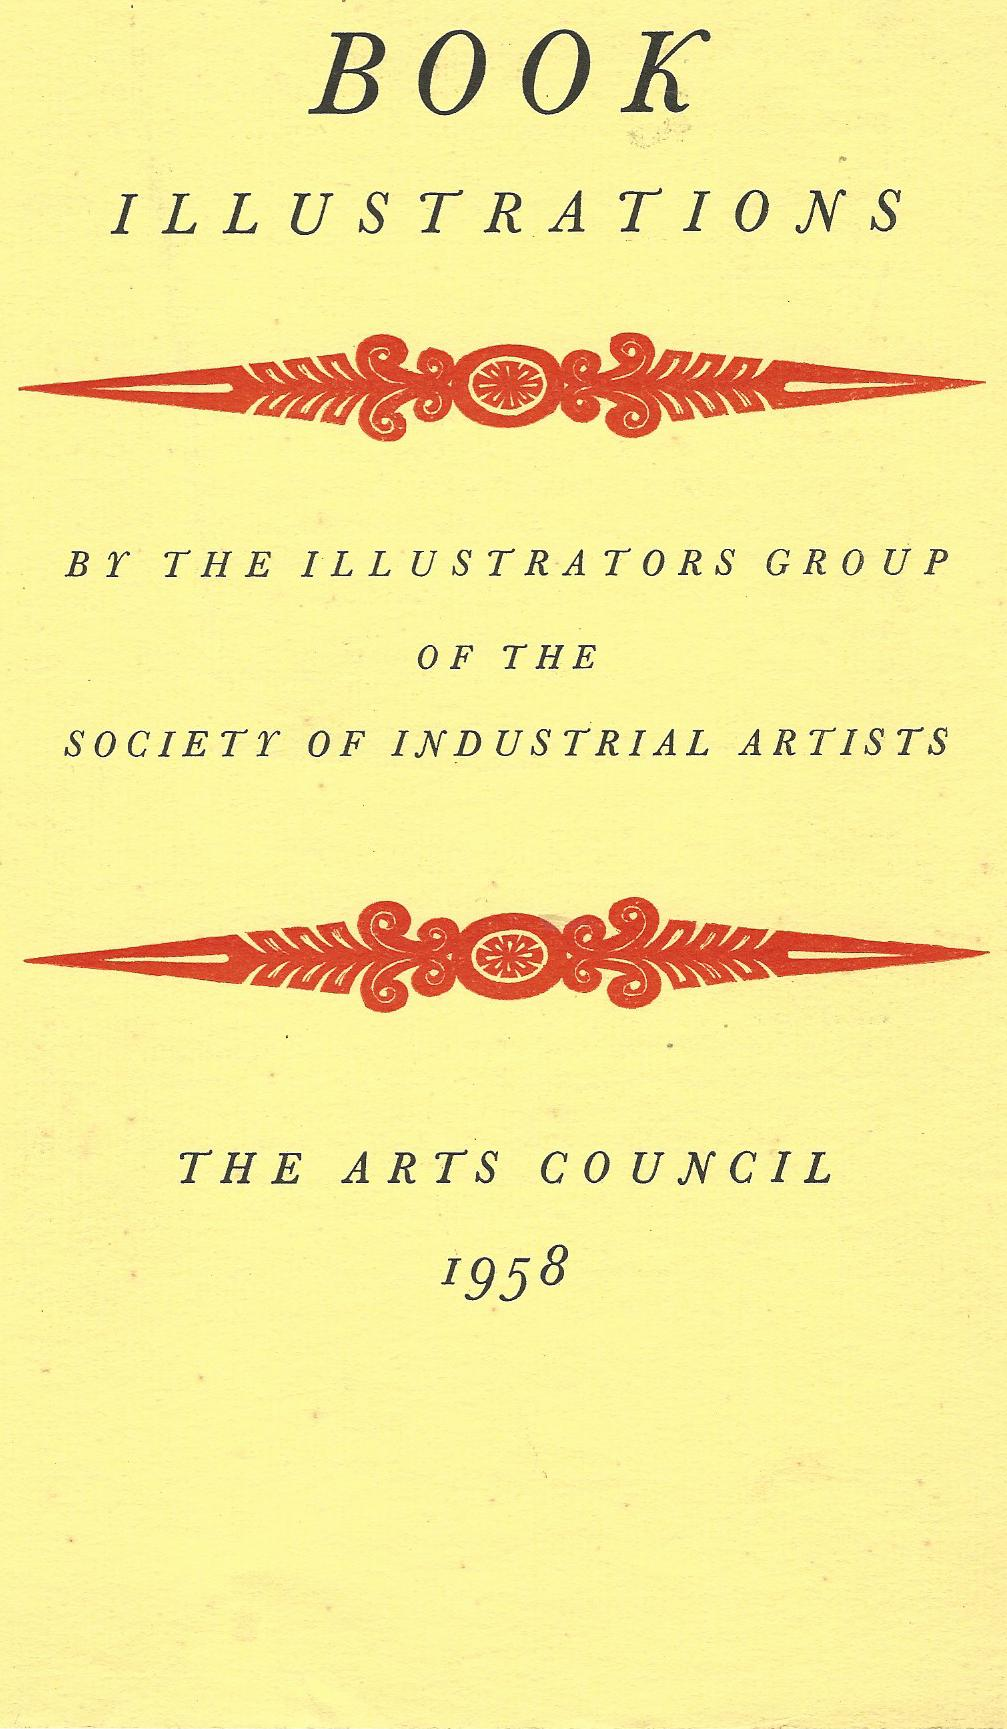 Image for Book Illustrations by the Illustrators Group of the Society of Industrial Artists.